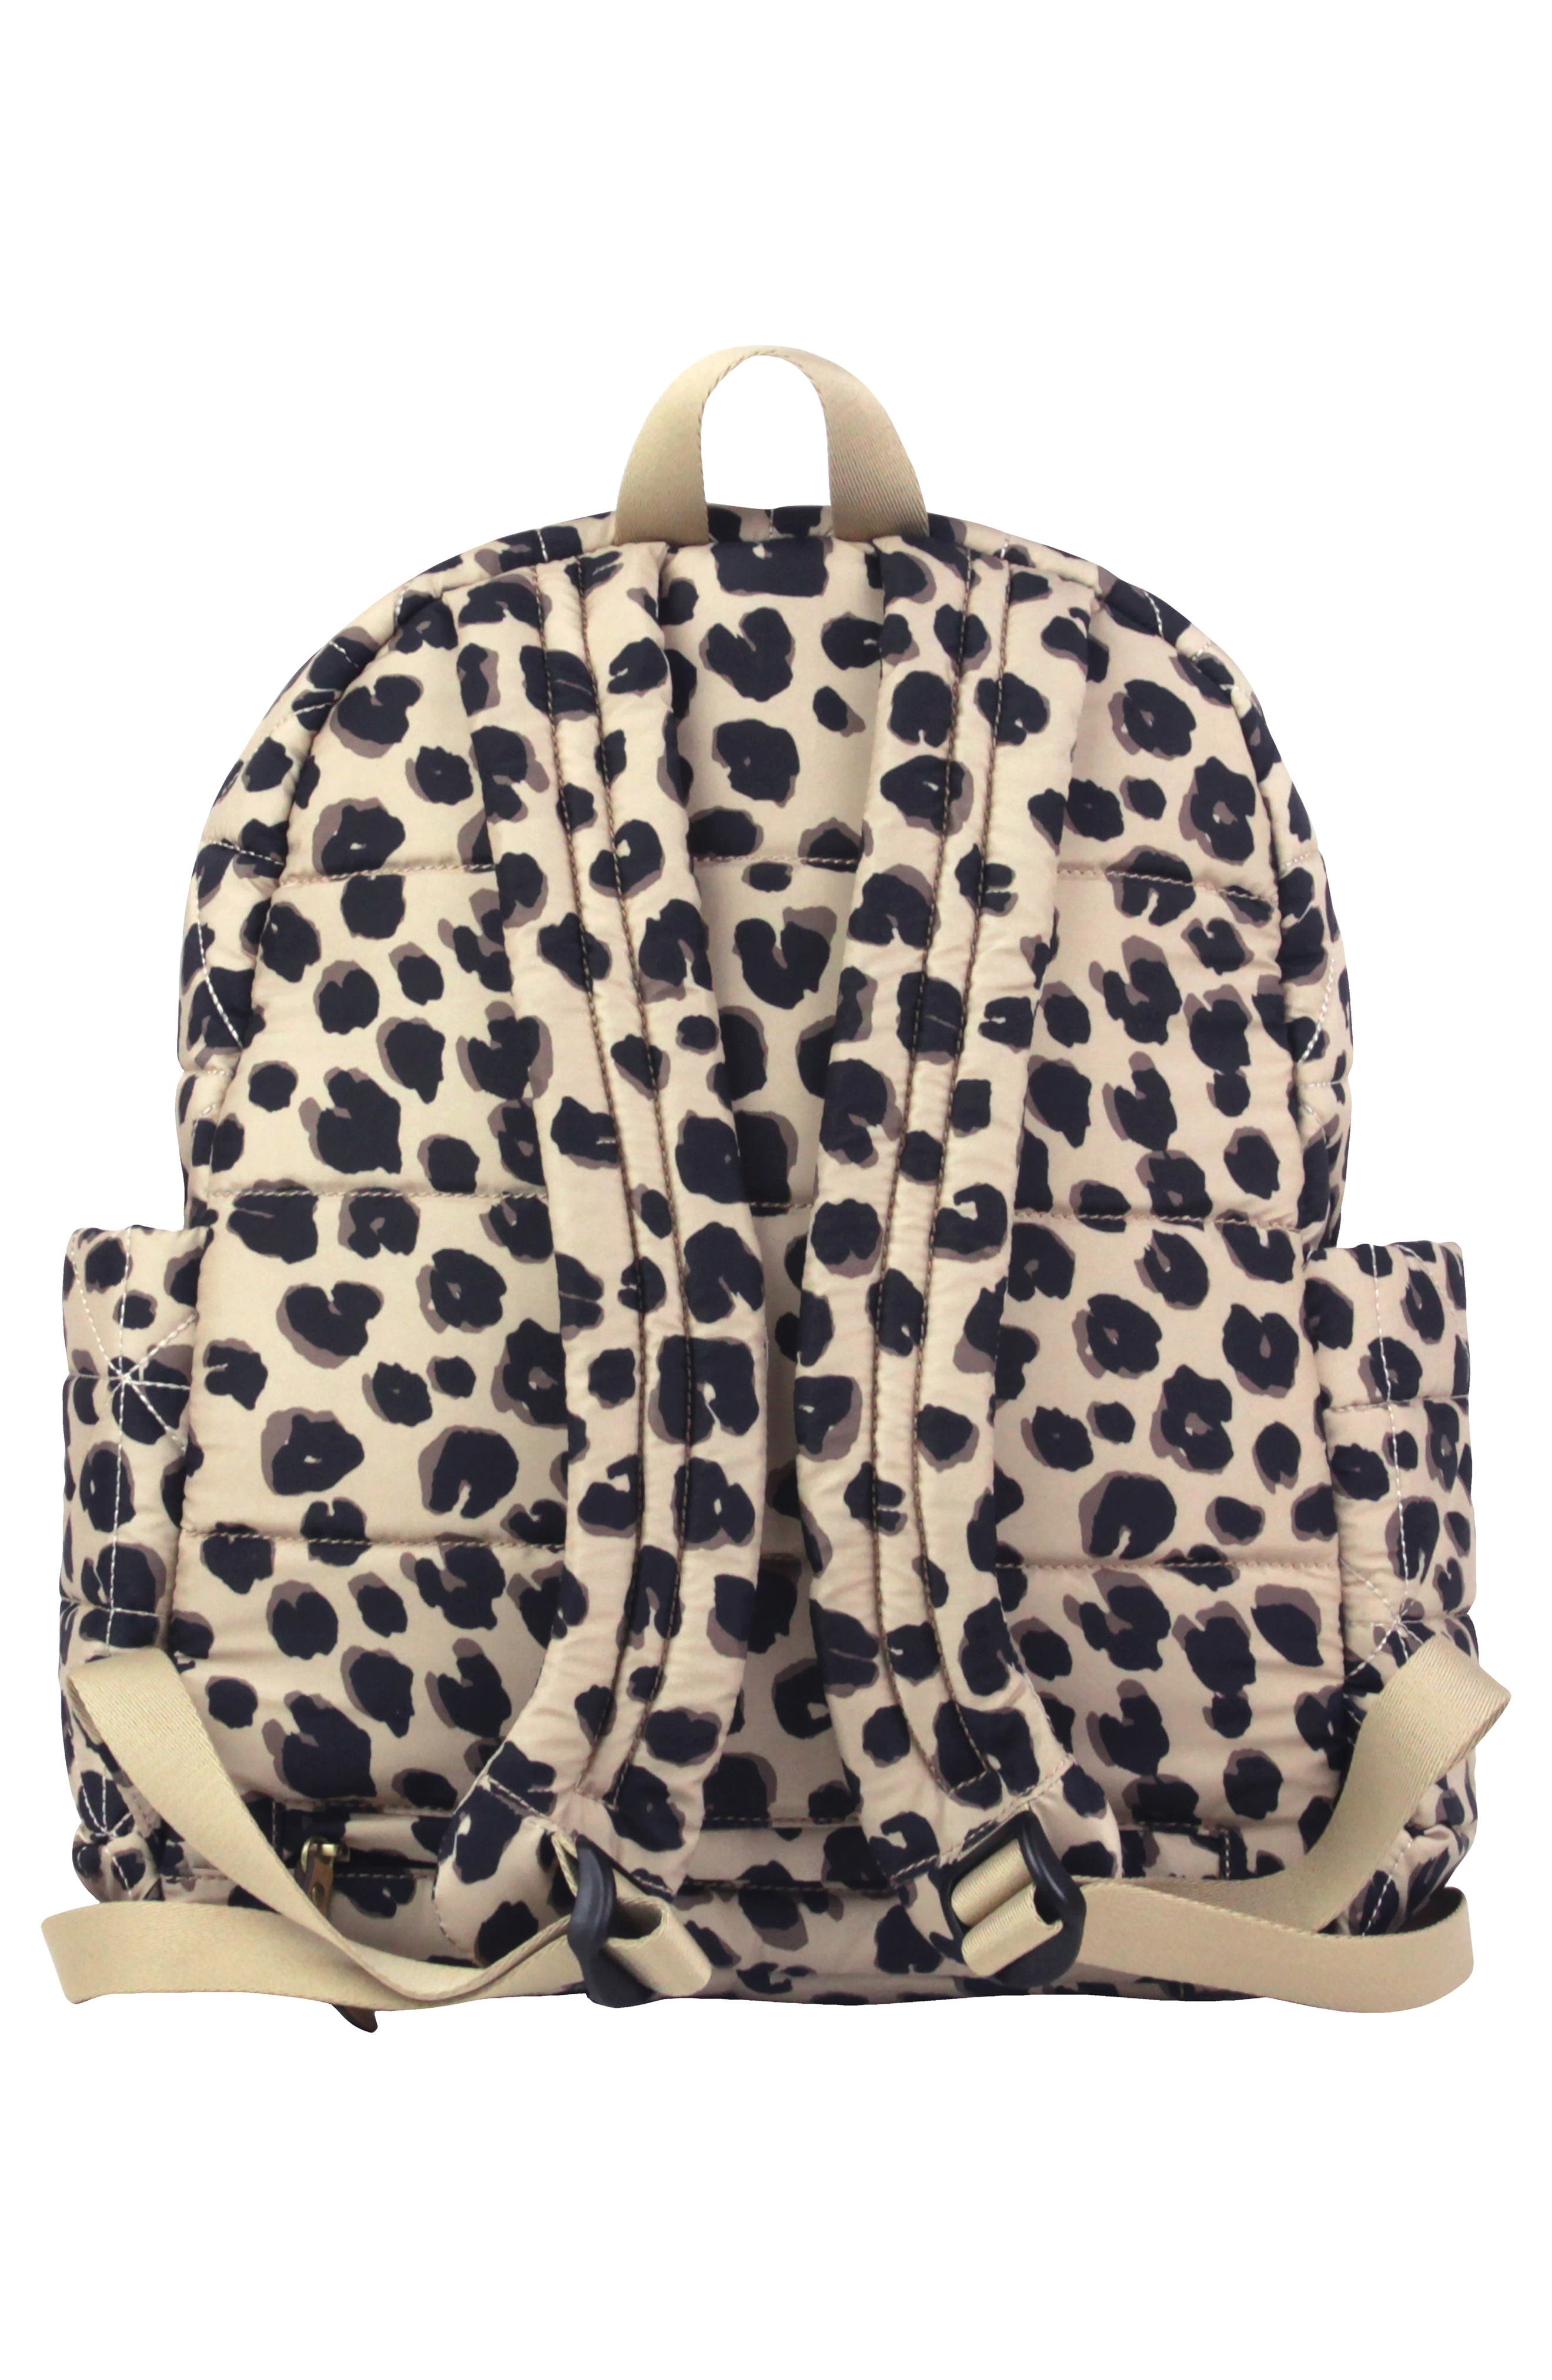 Quilted Water Resistant Nylon Diaper Backpack,                             Alternate thumbnail 3, color,                             LEOPARD PRINT